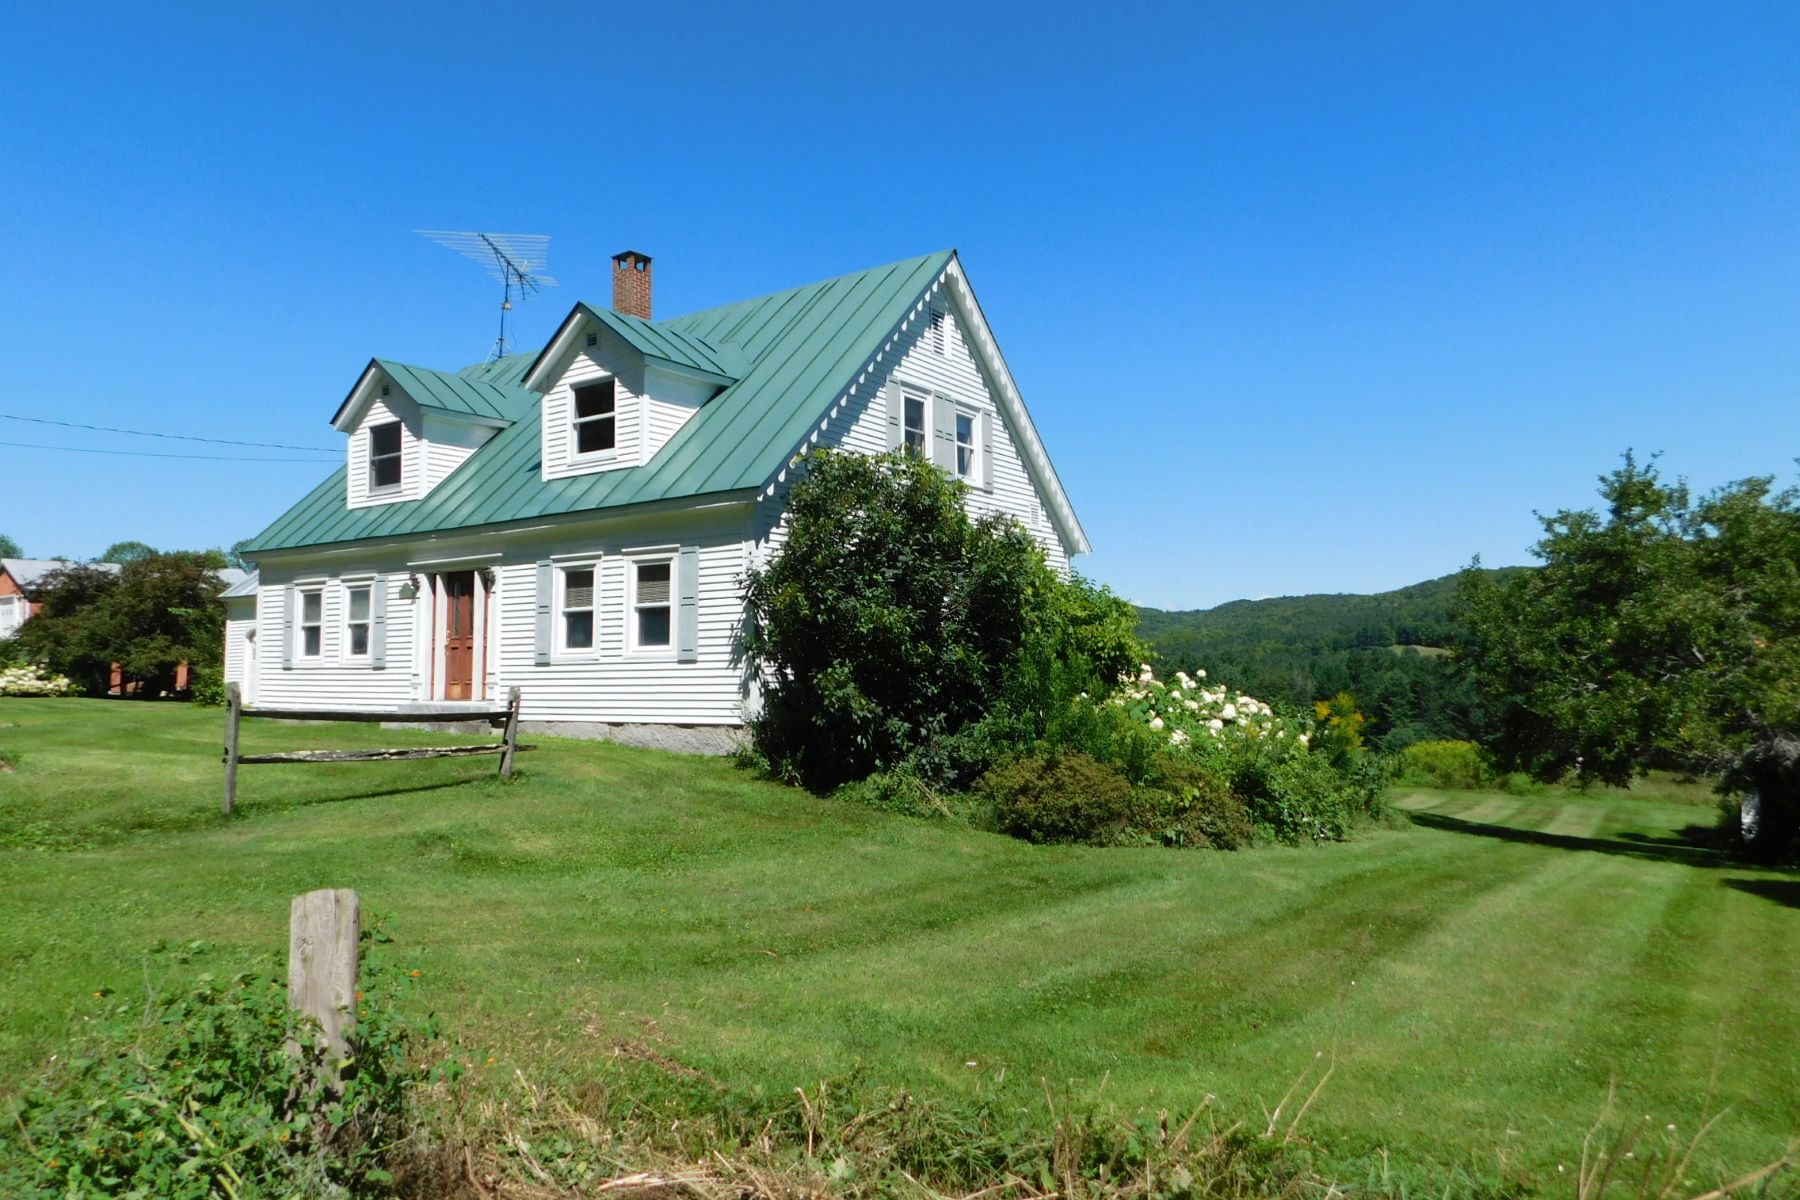 Single Family Homes for Sale at Home, Hearth and Harvest 1738 Cookeville Rd Corinth, Vermont 05039 United States